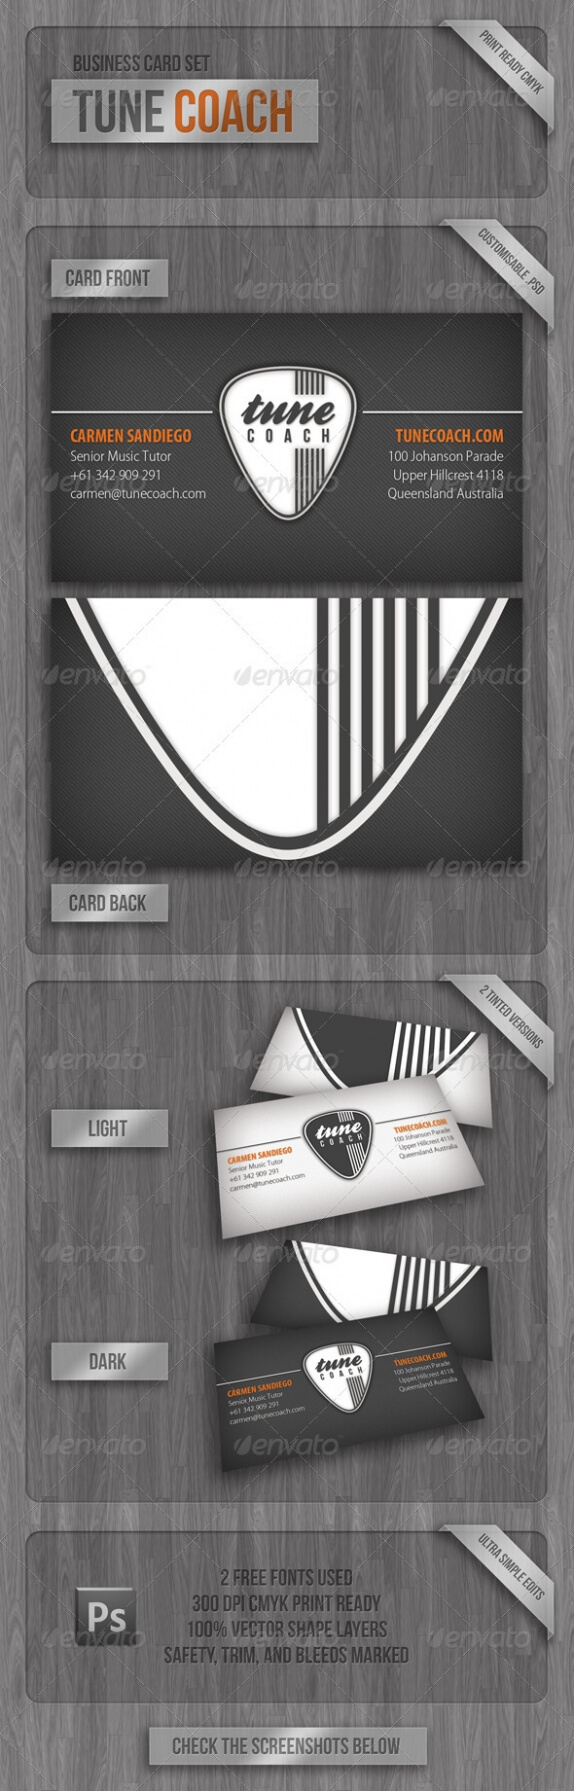 Cardview – Business Card & Visit Card Design Inspiration Pertaining To Business Cards For Teachers Templates Free